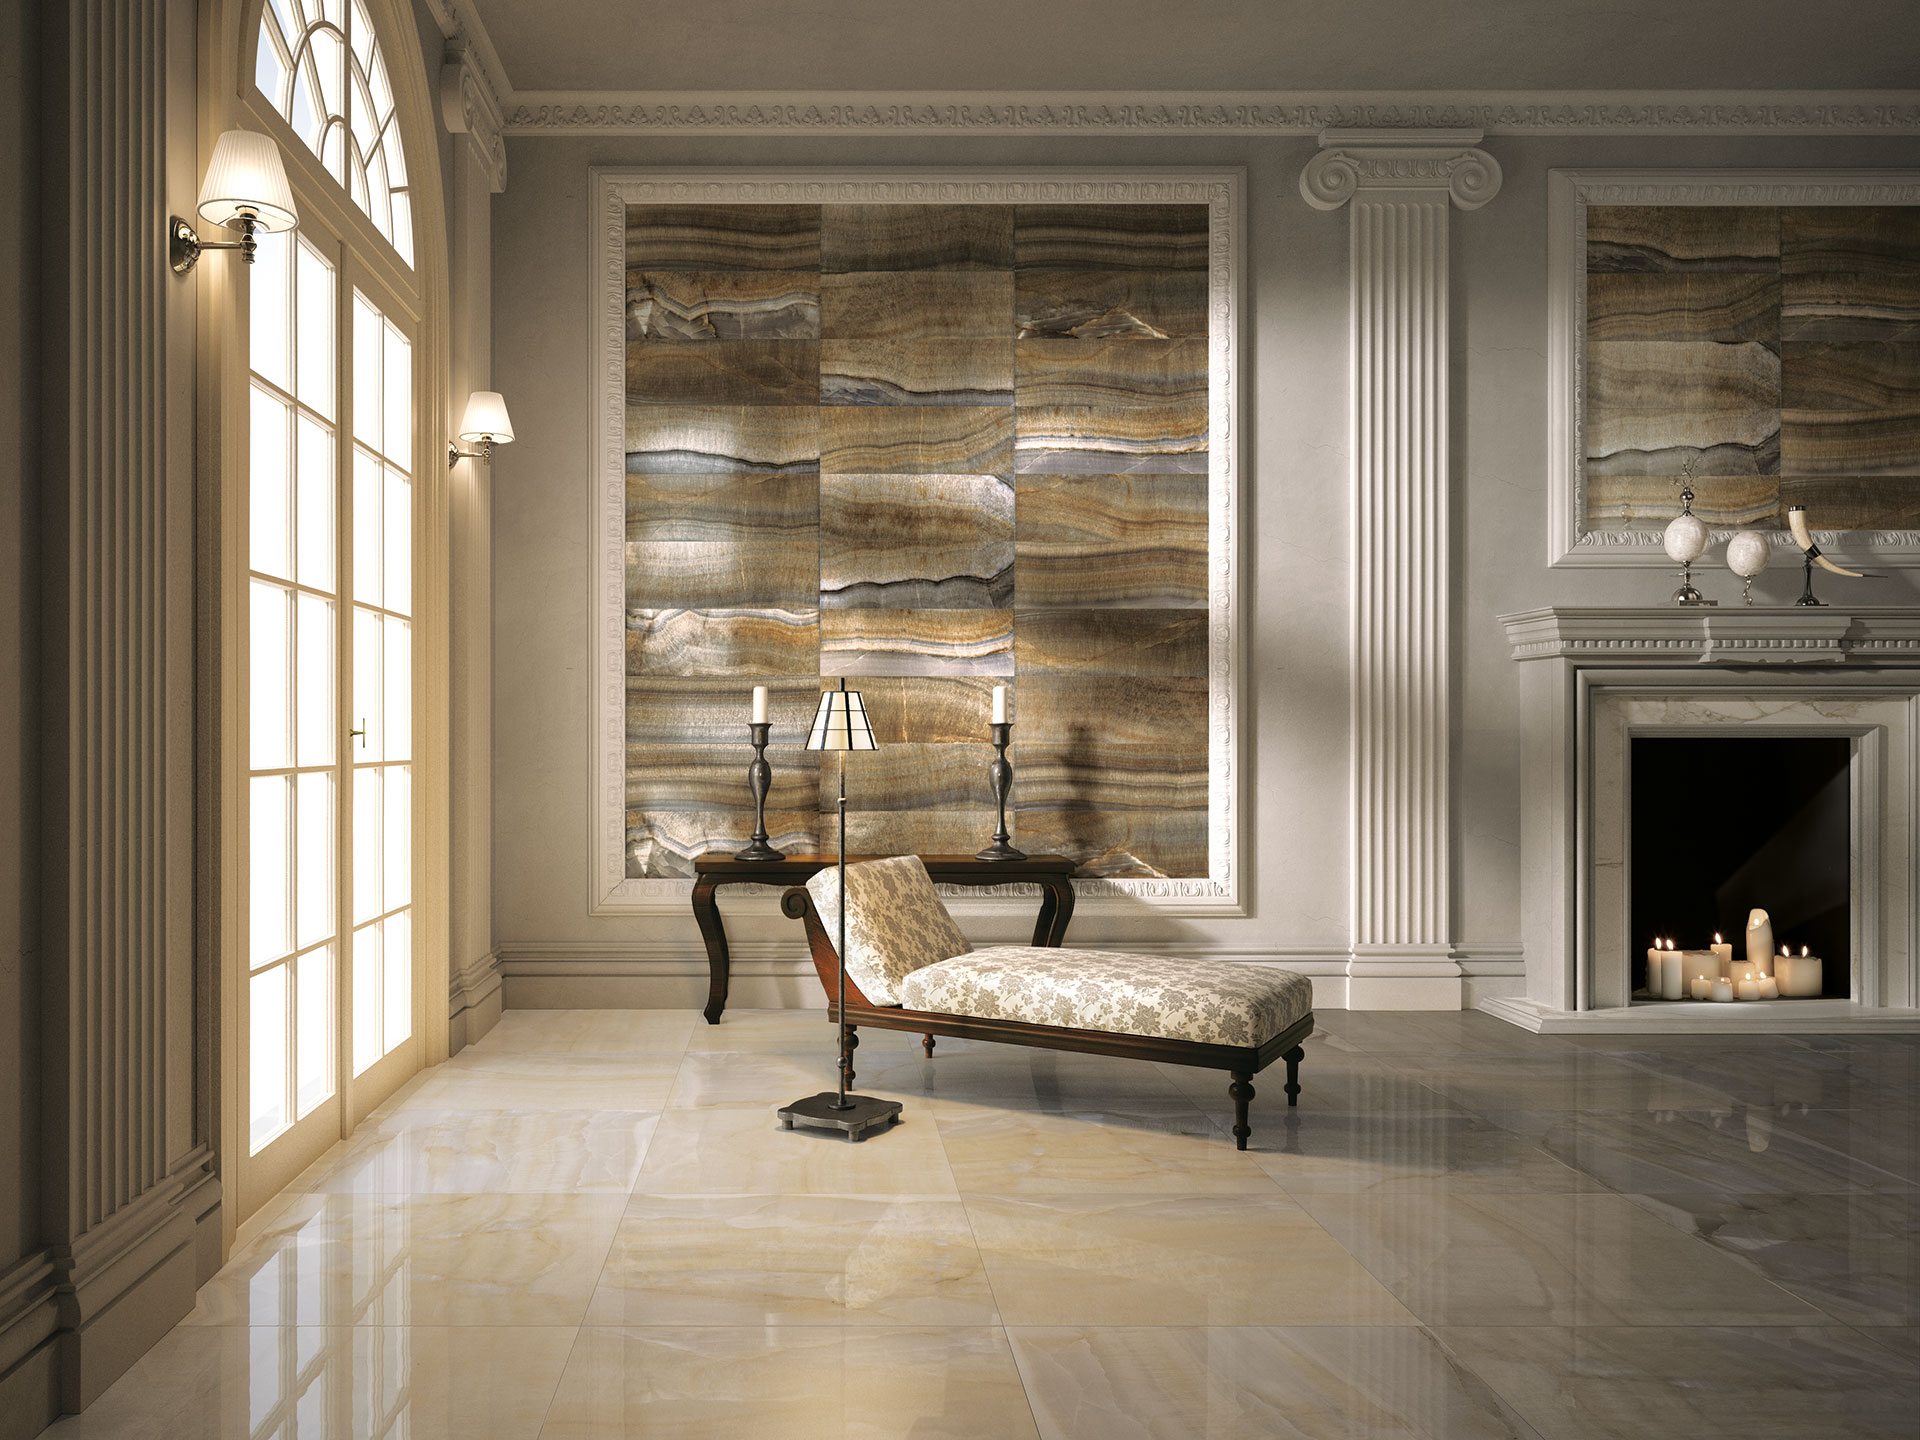 The charm of classic IRIS spaces: Muse floor and wall coverings